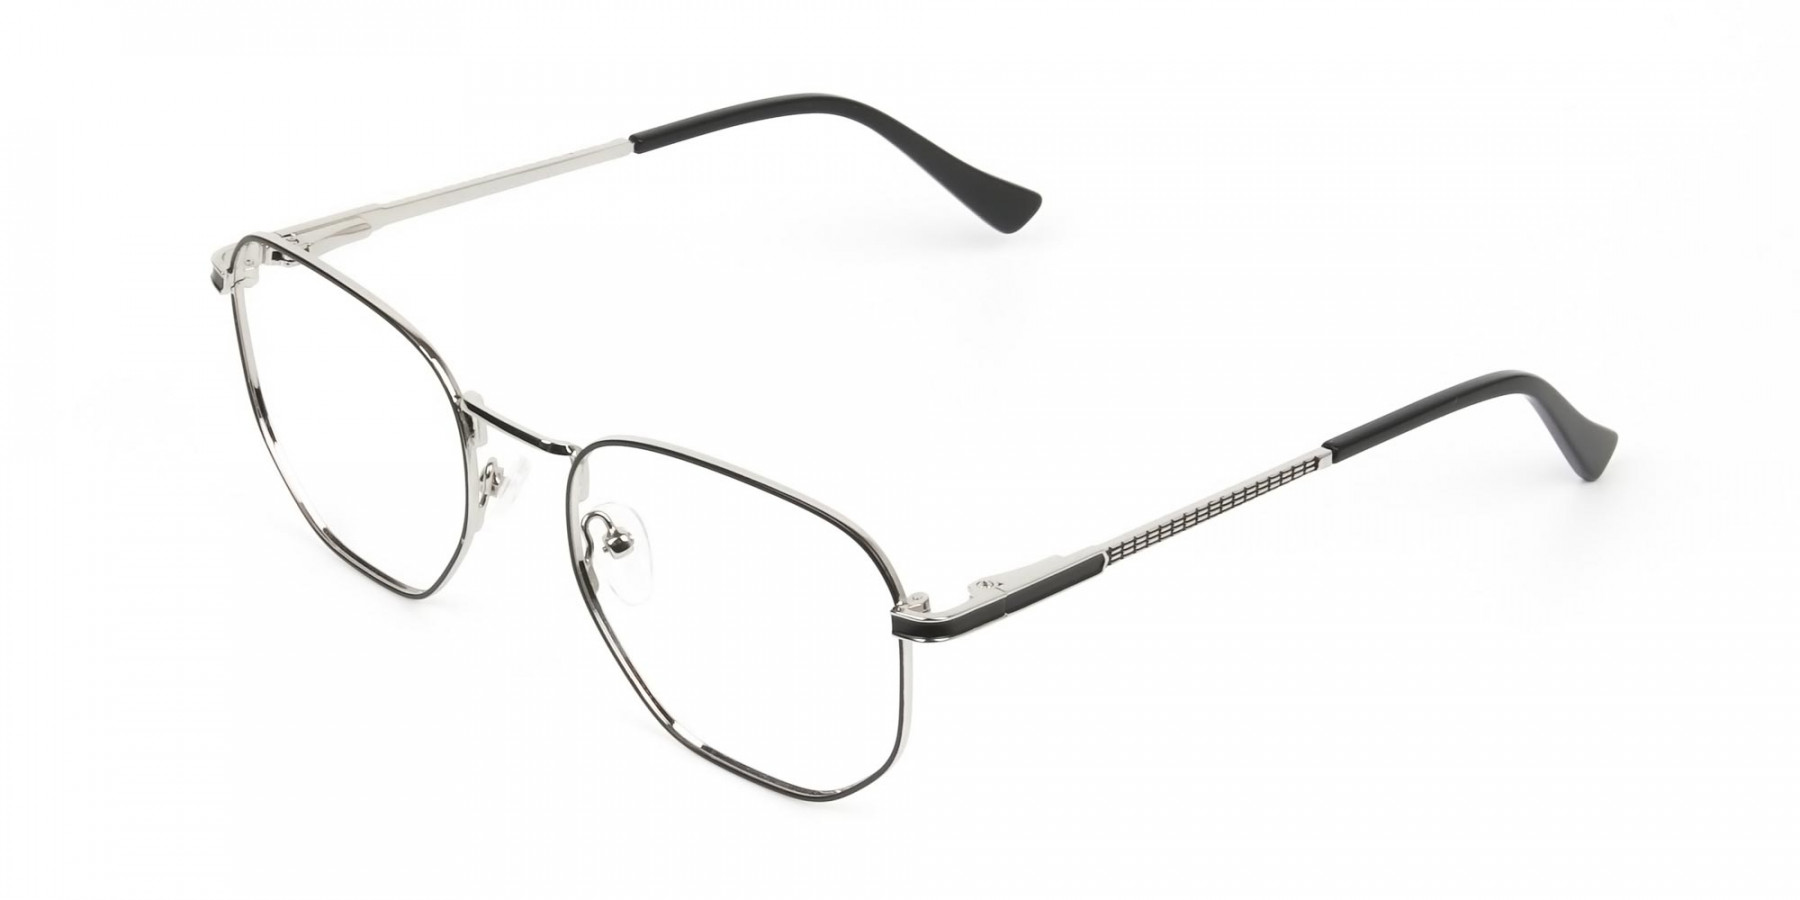 Lightweight Black & Silver Geometric Glasses - 1